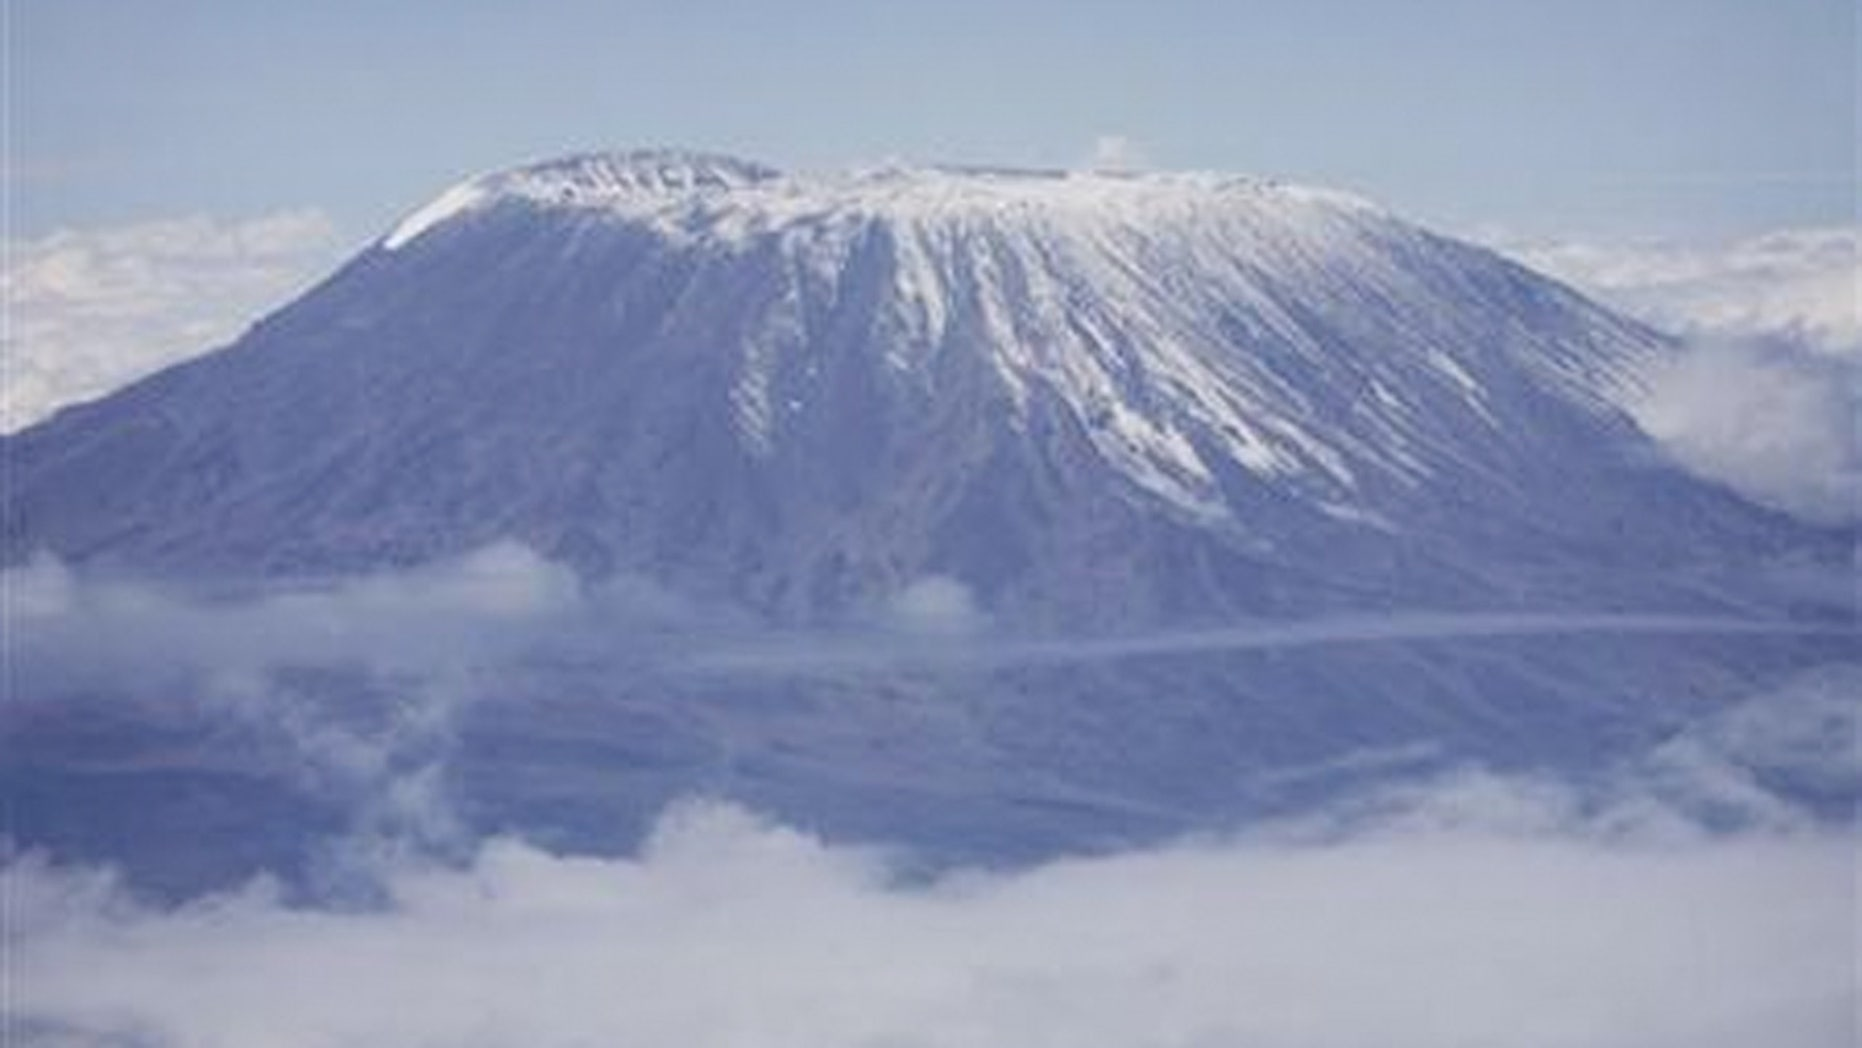 Mt. Kilimanjaro is a climb of 19,340 feet through all kinds of terrain and vastly fluctuating temperatures.